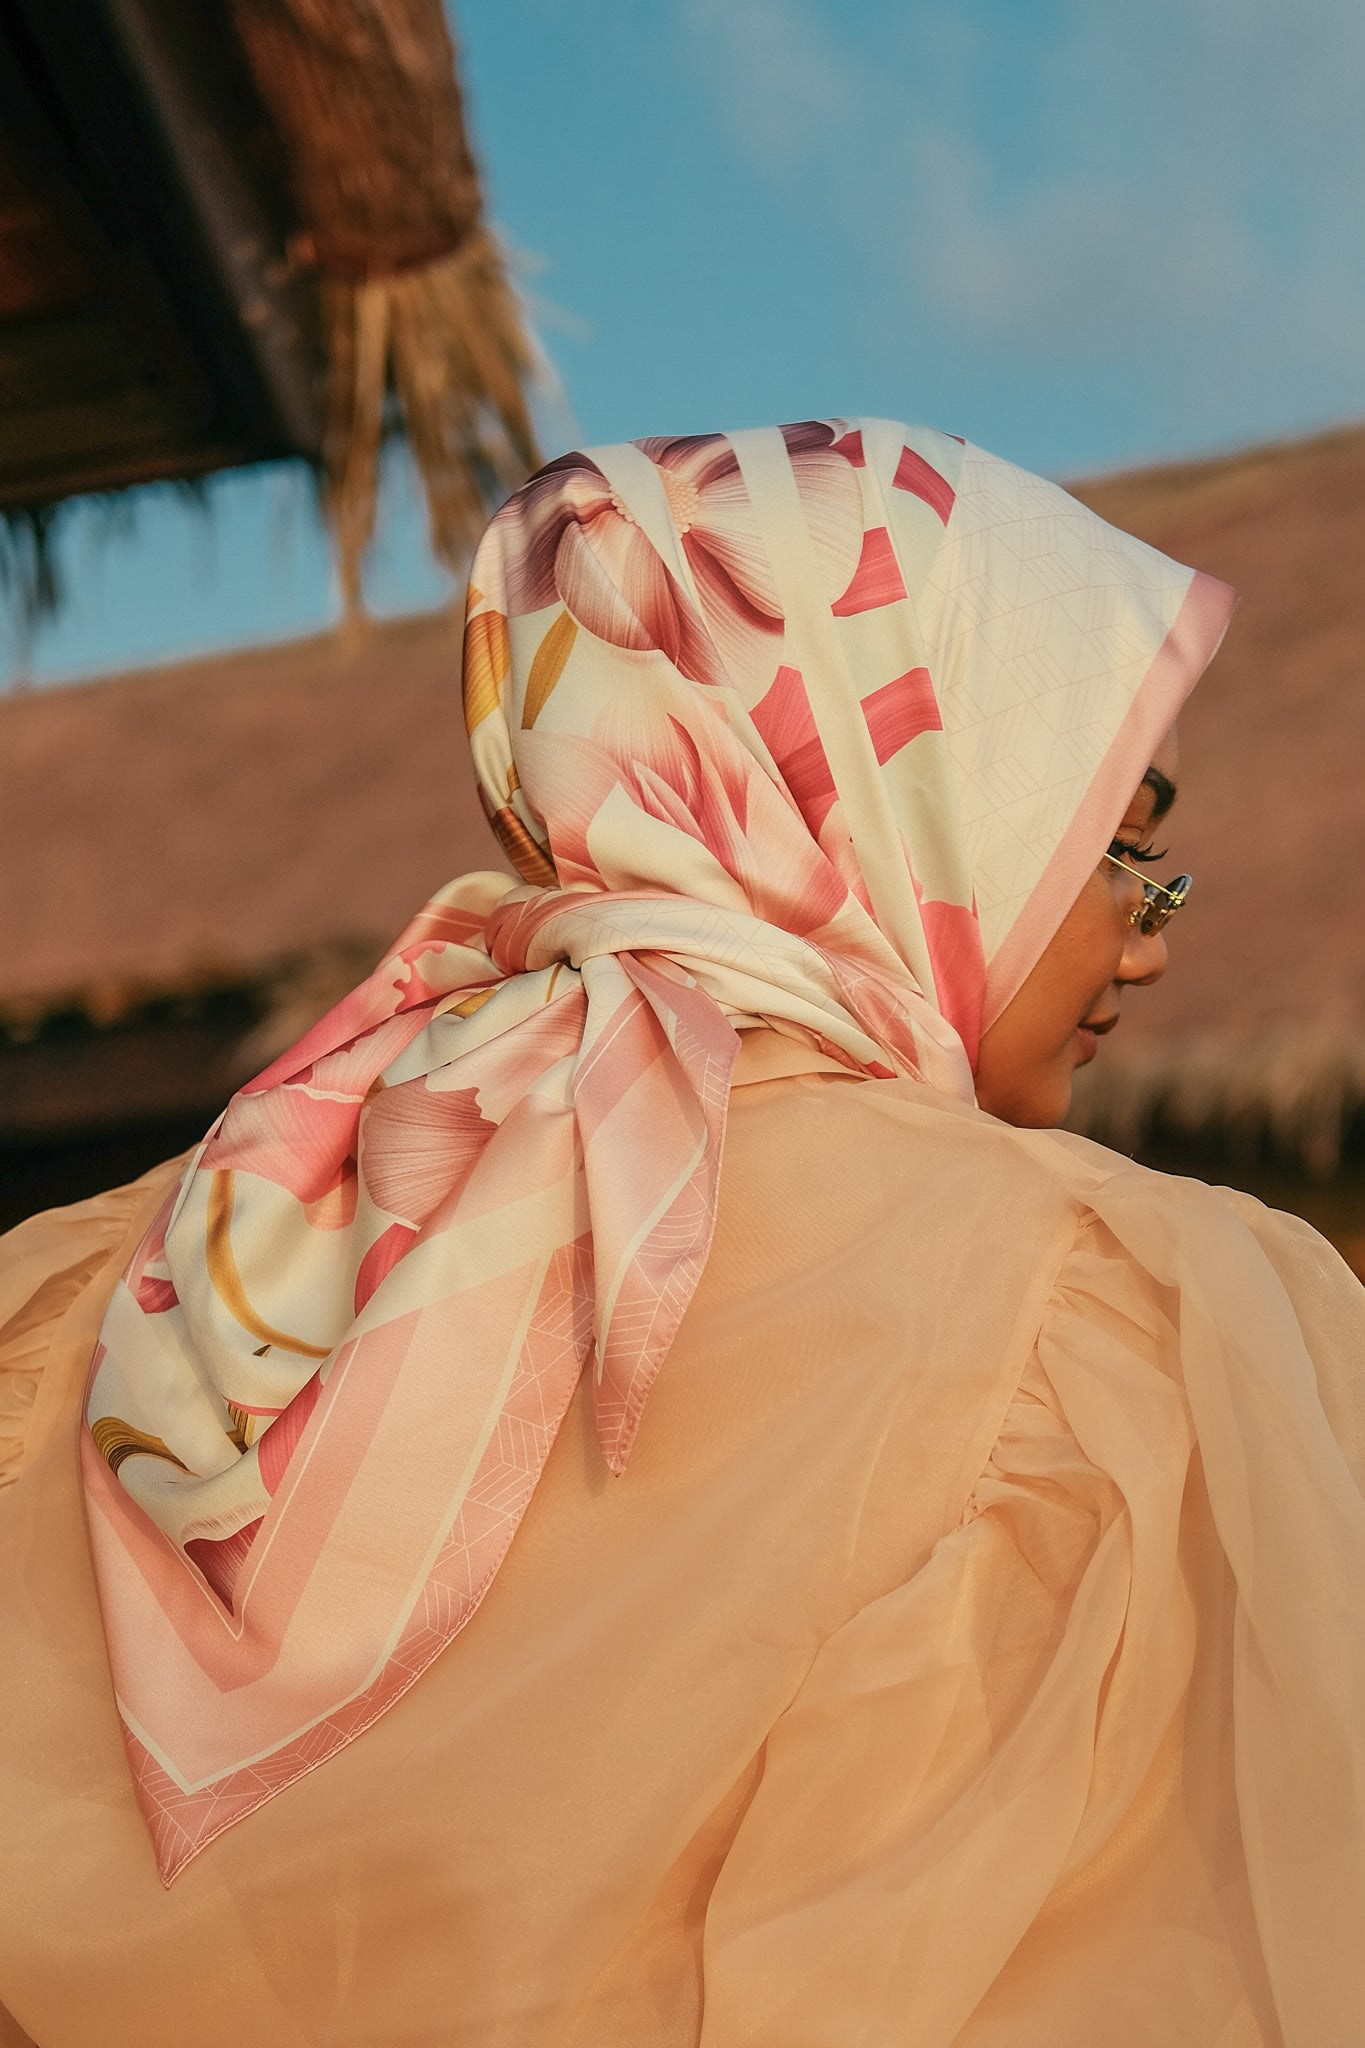 Maldives Wanderlust Series : Aarah (3 Way Bawal)